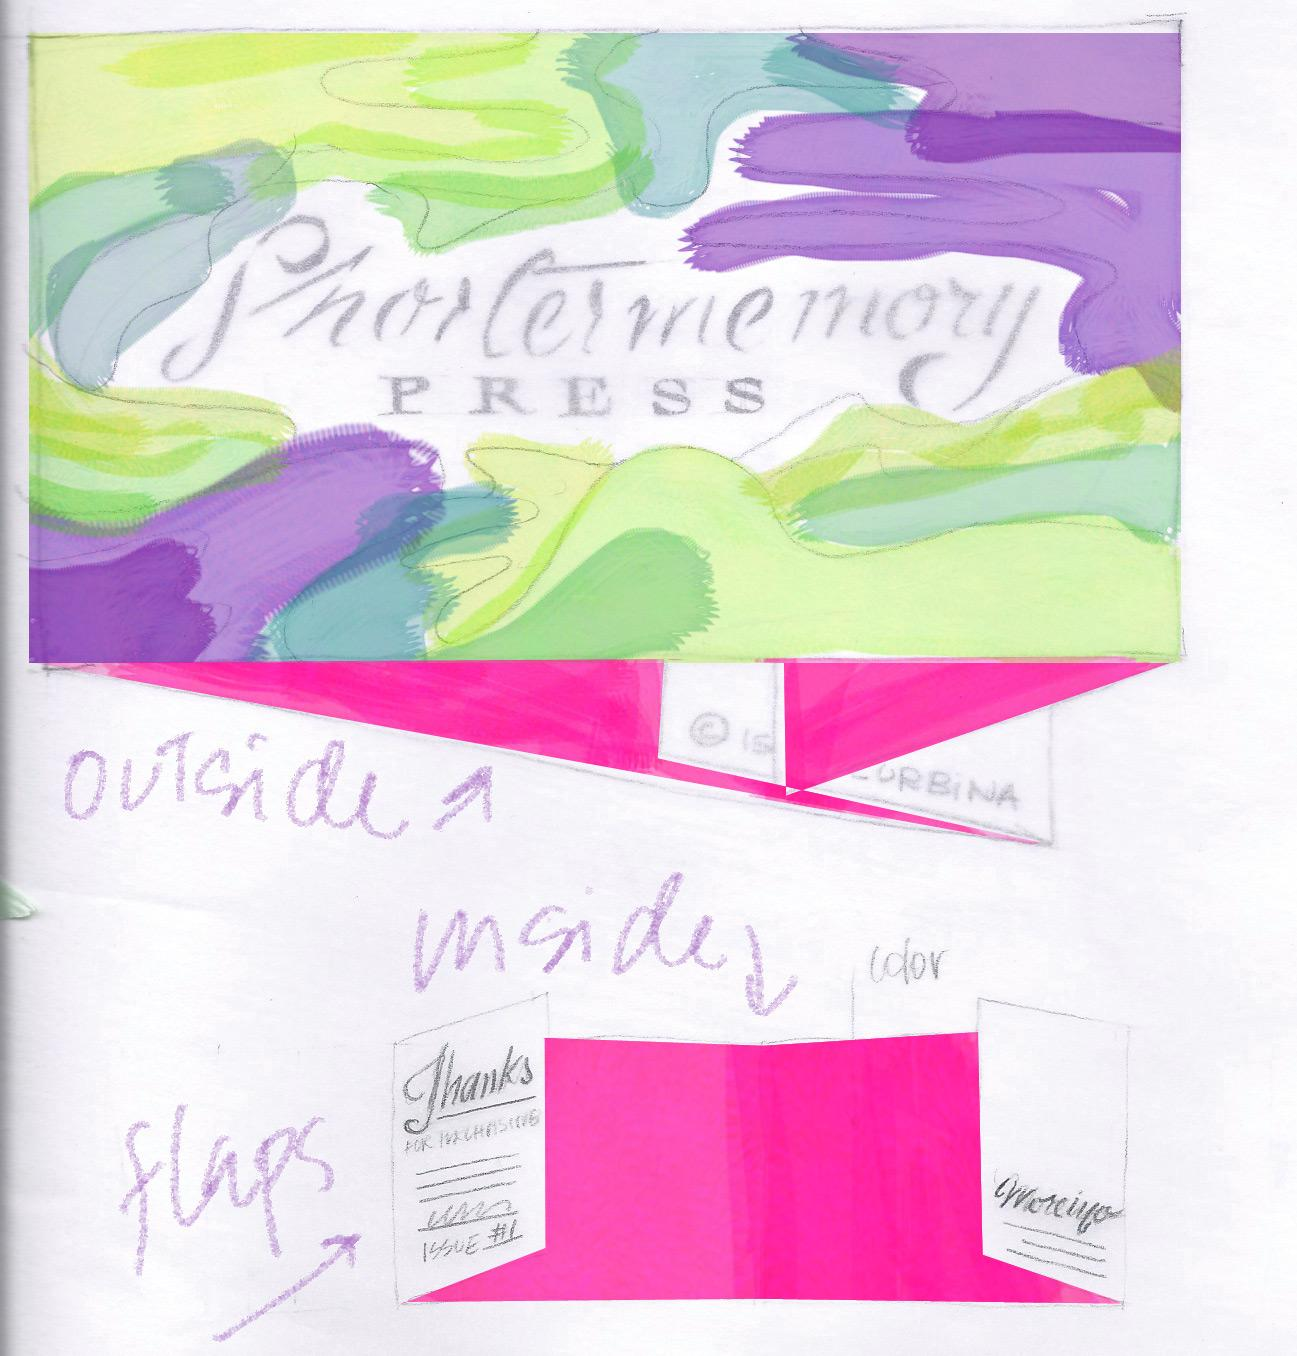 Short Term Memory Press - image 5 - student project